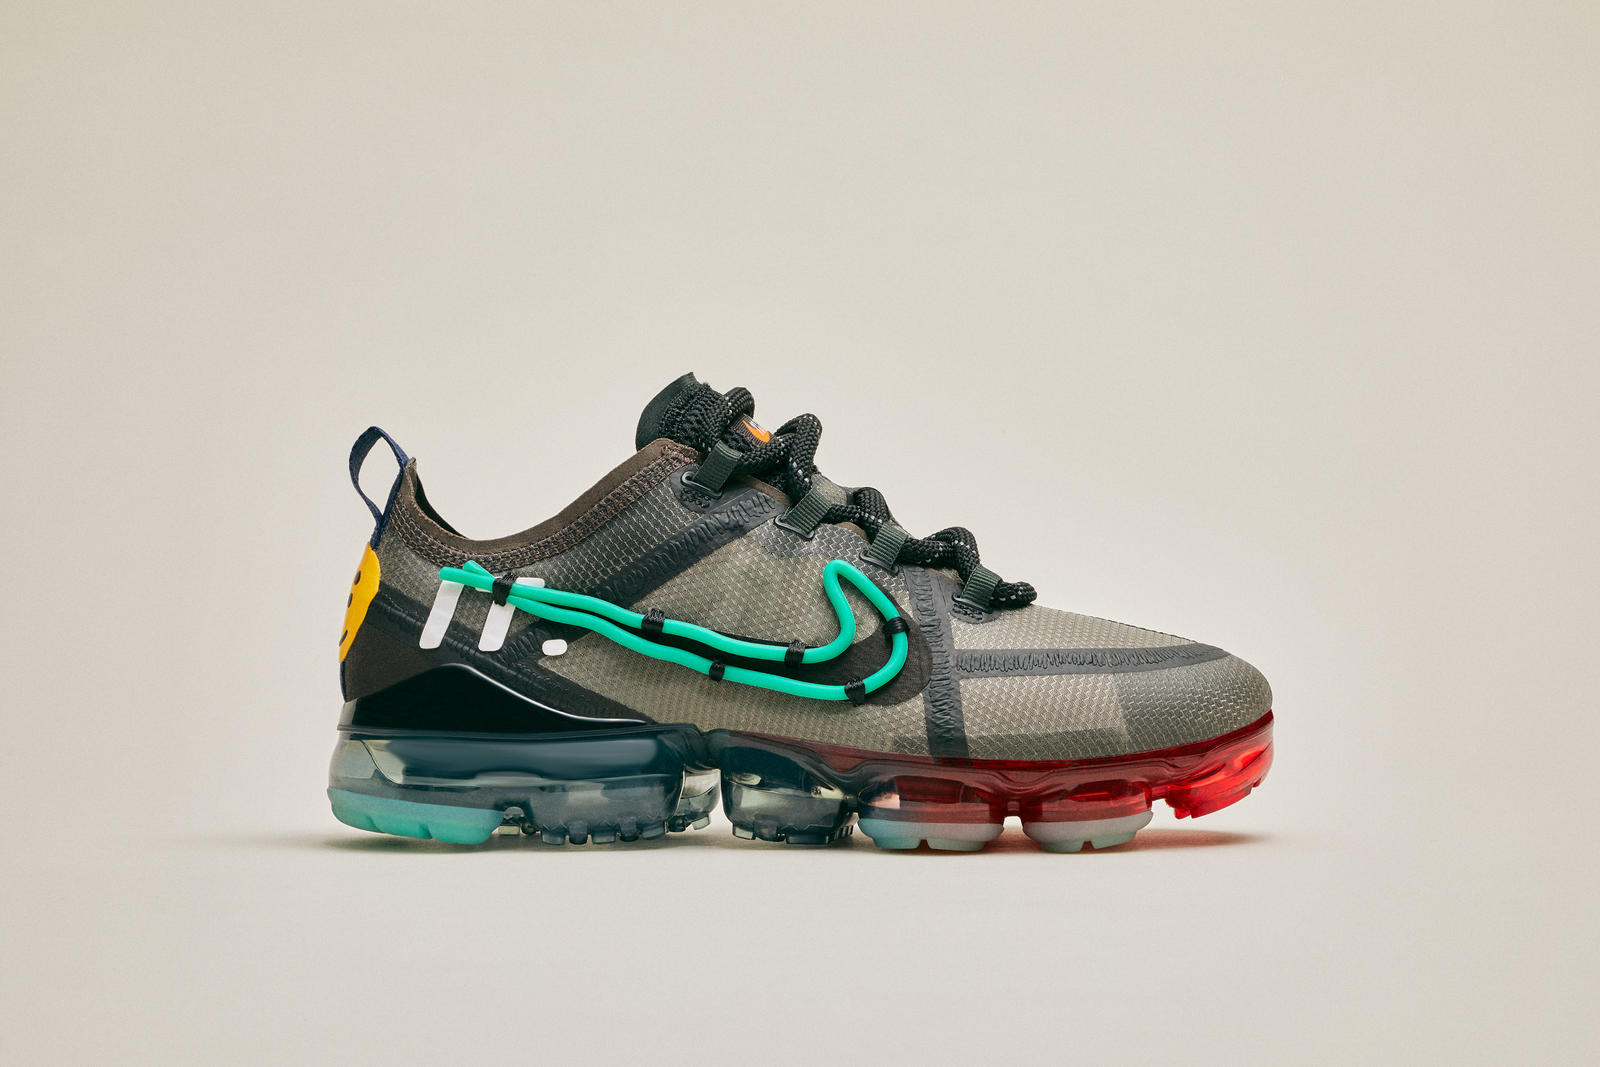 a23e5e12aa8 Nike Air VaporMax Reveals the Pinnacle of Air - Nike News